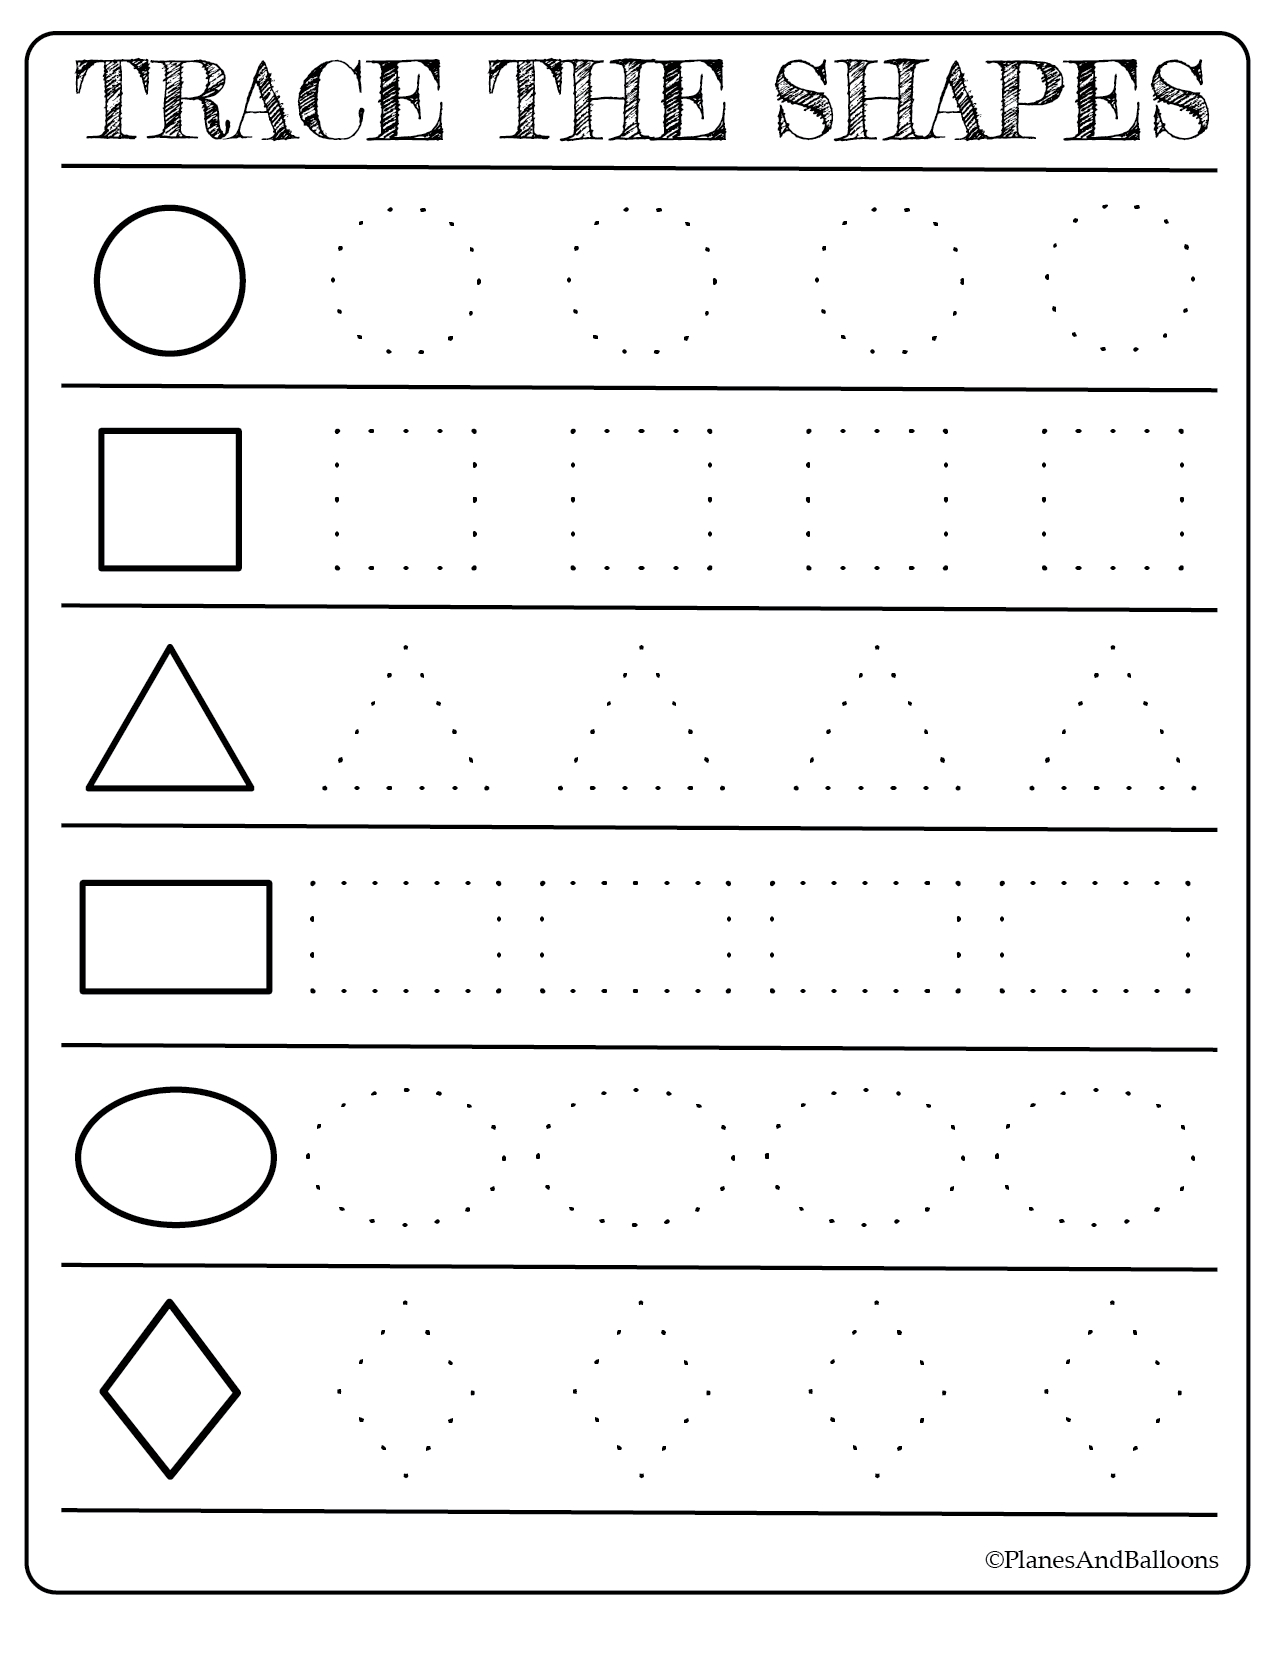 Free Printable Shapes Worksheets For Toddlers And Preschoolers - Free Printable Shapes Worksheets